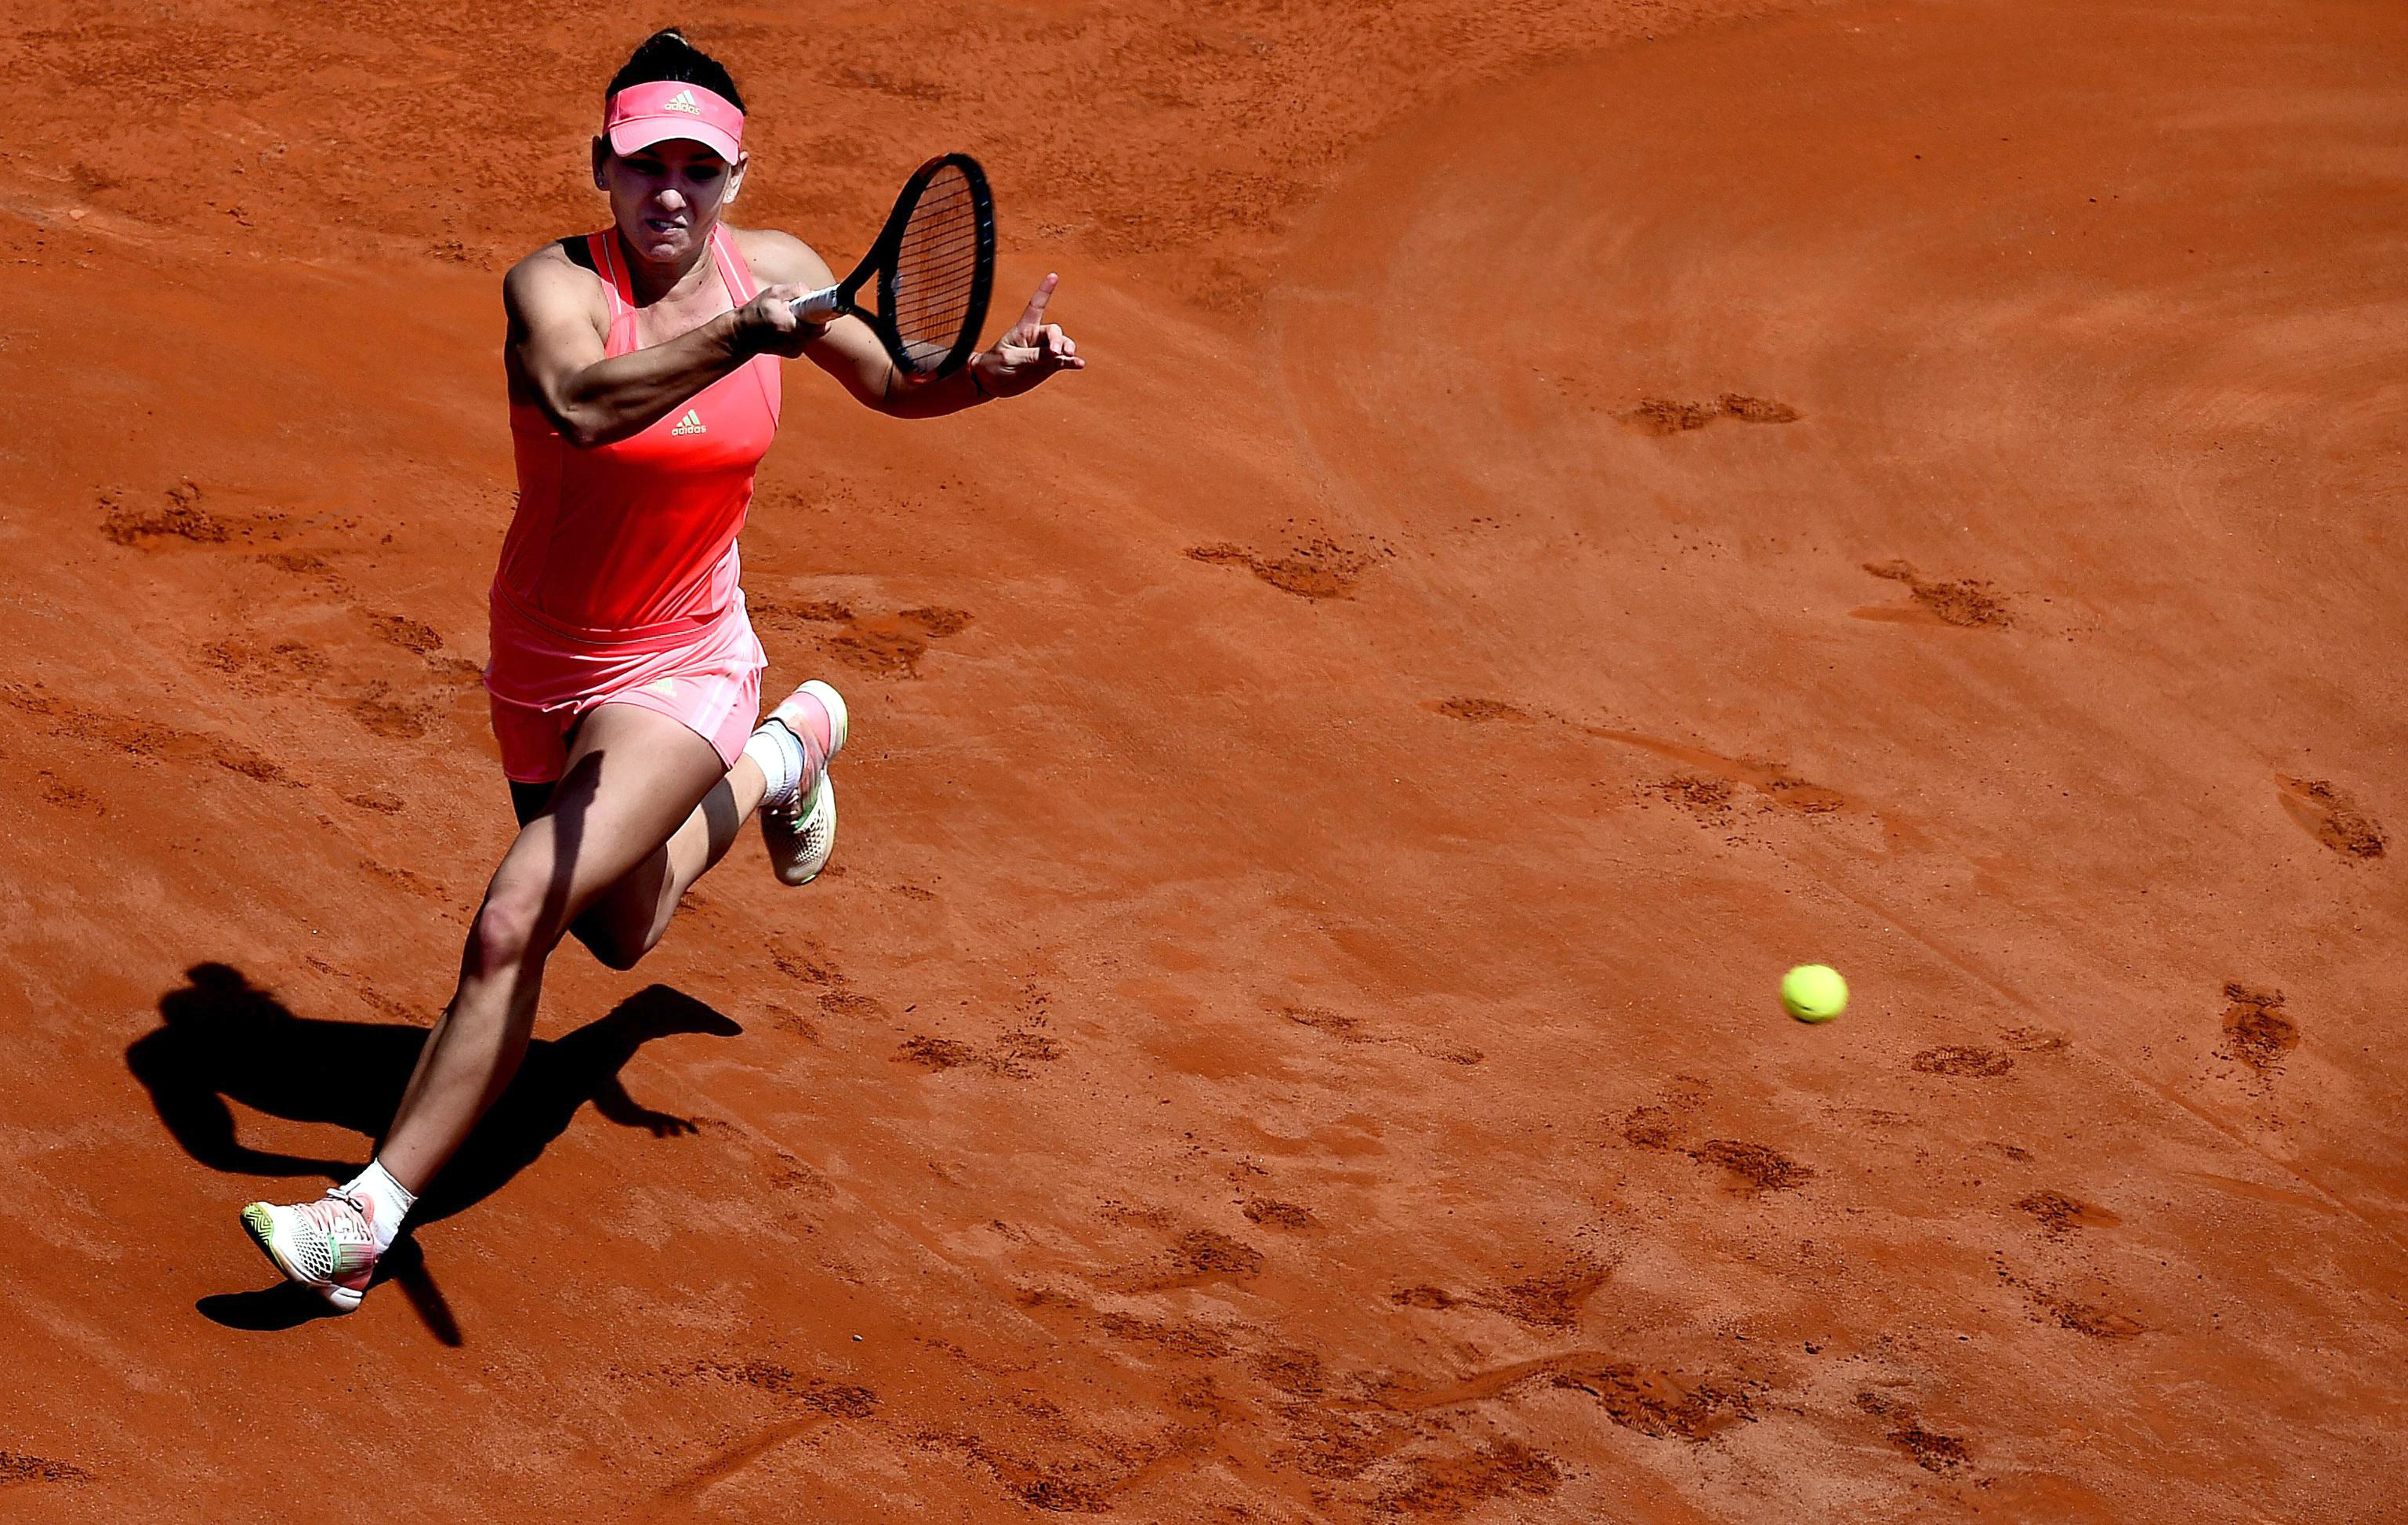 Romania's Simona Halep strikes a forehand to Spain's Carla Suarez Navarro, during their semifinal match at the Italian Open tennis tournament, in Rome, Saturday, May 16, 2015. (Claudio Onorati/ANSA via AP)